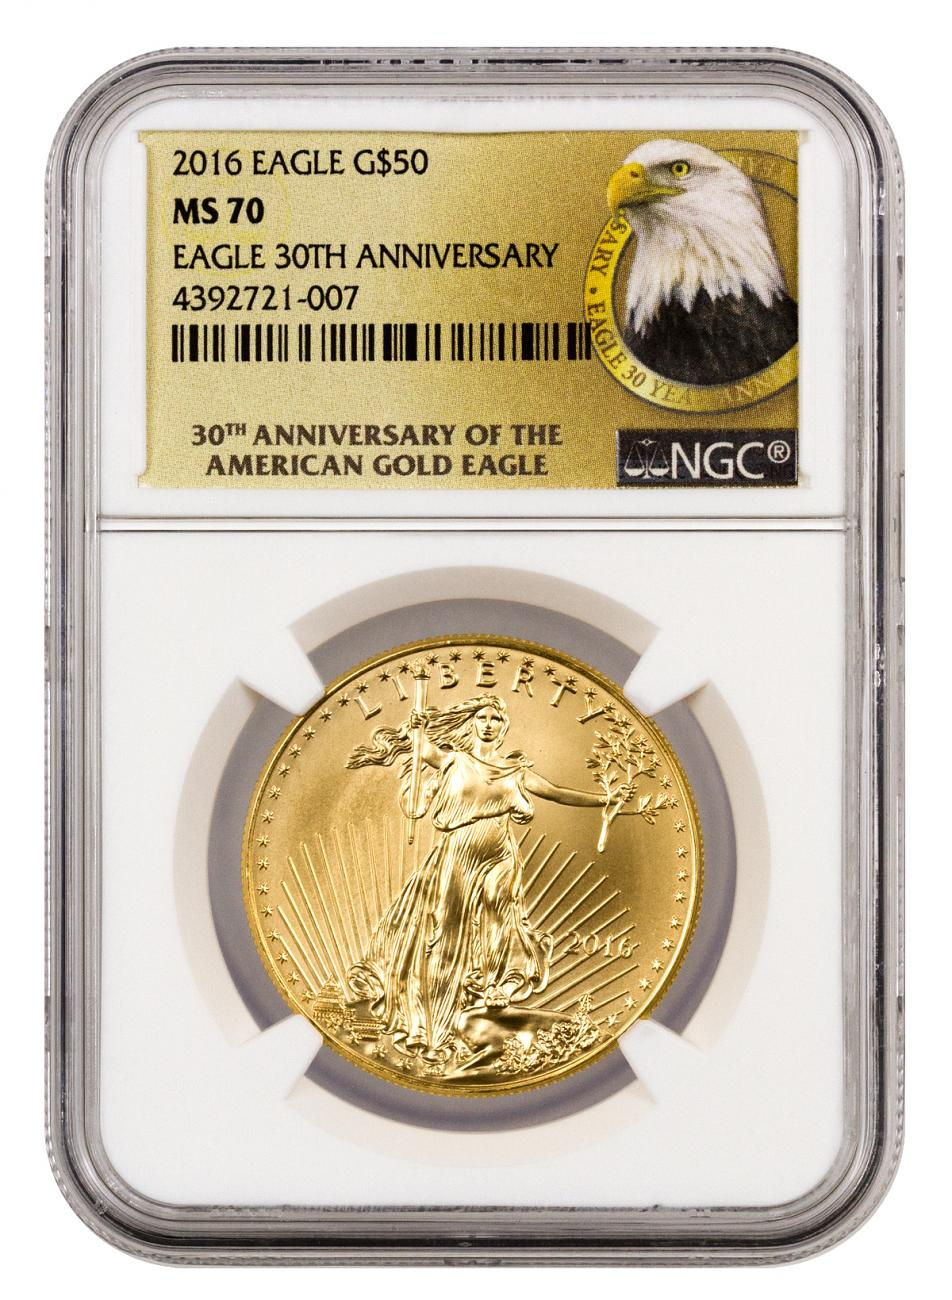 2016 $50 1 oz. American Gold Eagle - NGC MS70 (30th Anniversary Label)